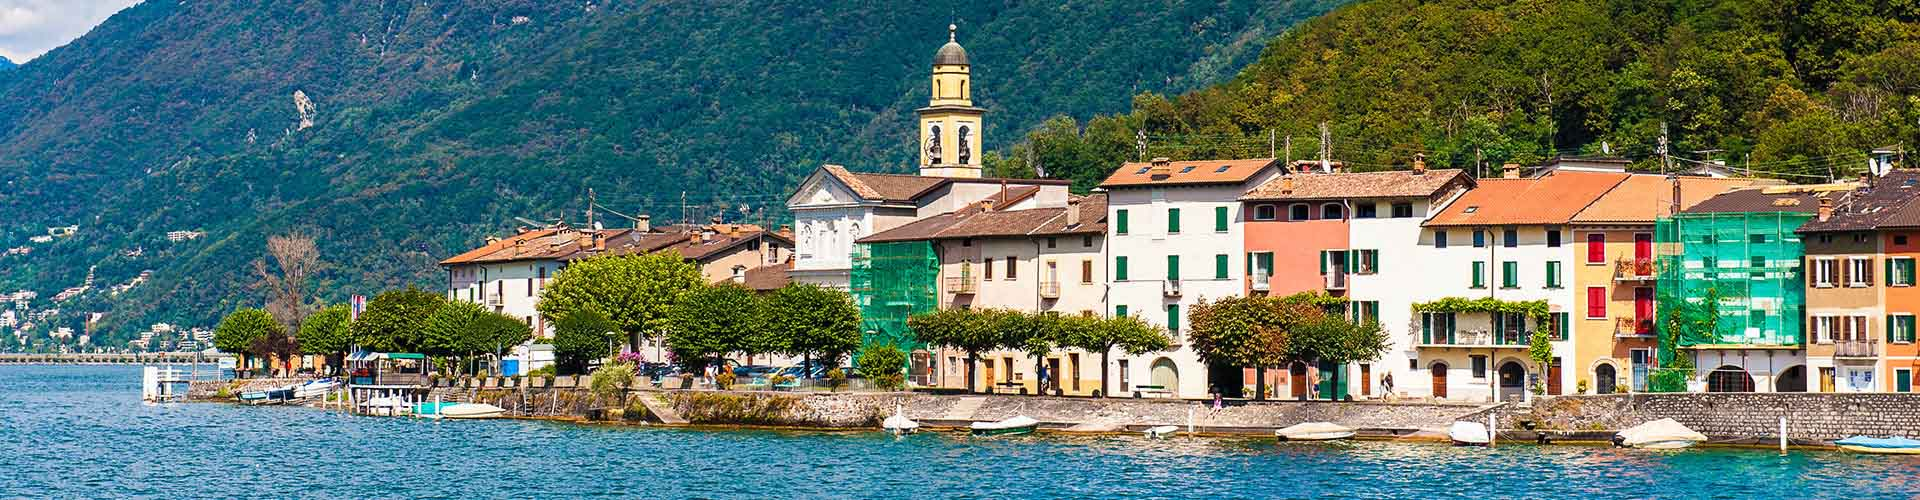 Lugano – Hostels in Lugano. Maps for Lugano, Photos and Reviews for each hostel in Lugano.